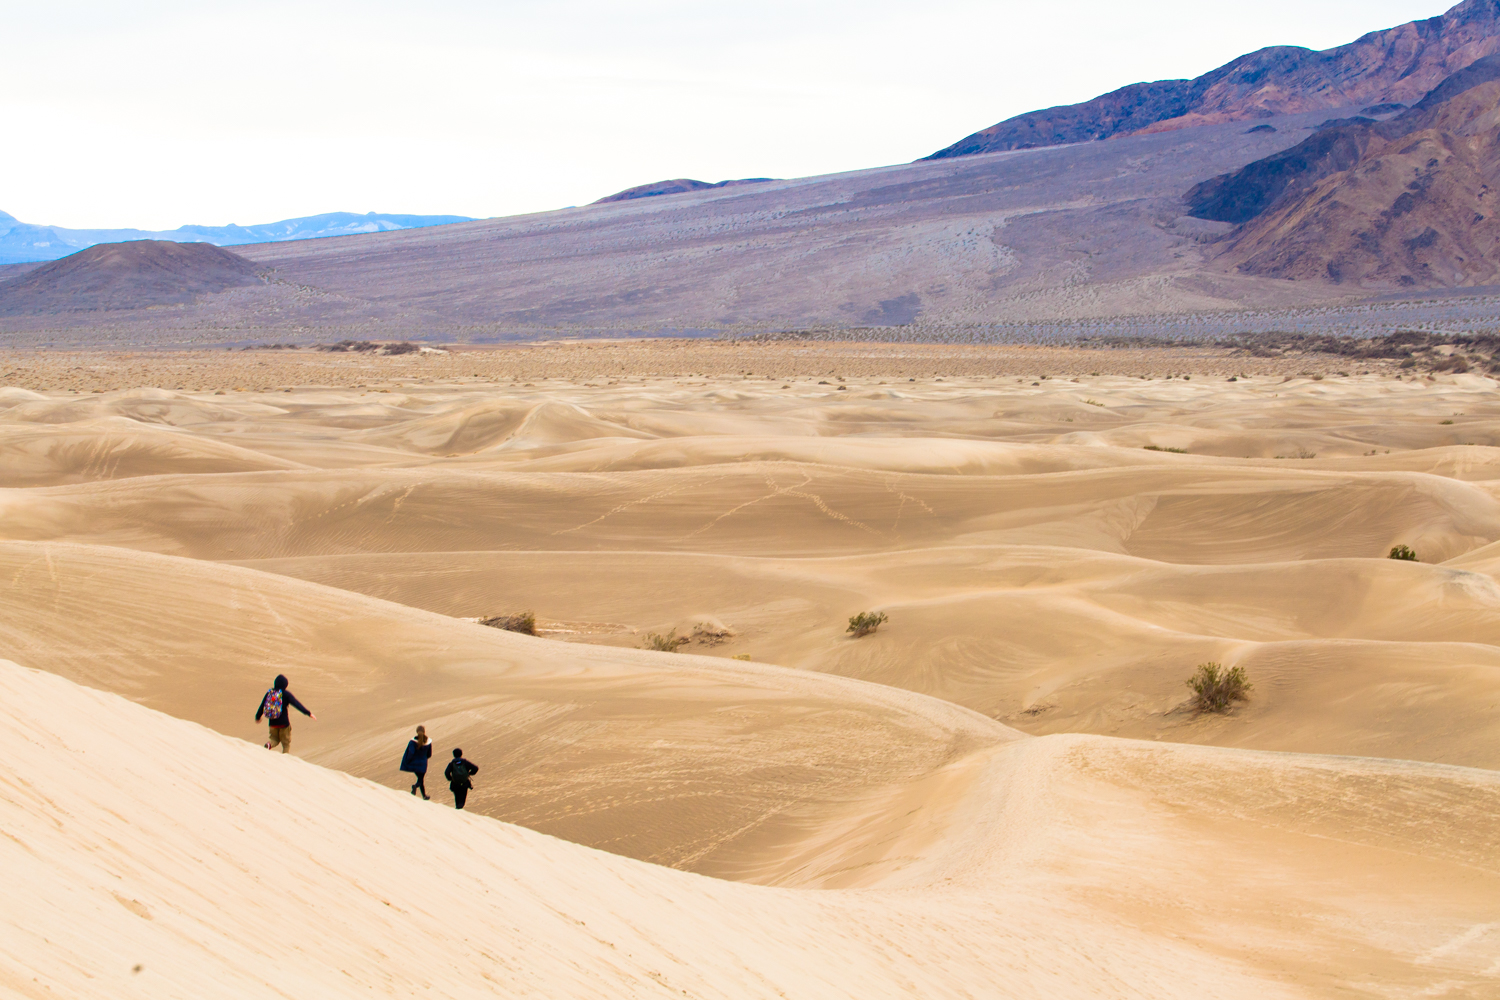 Helynn_Ospina_Travel_Death_Valley_California_01609-55.jpg